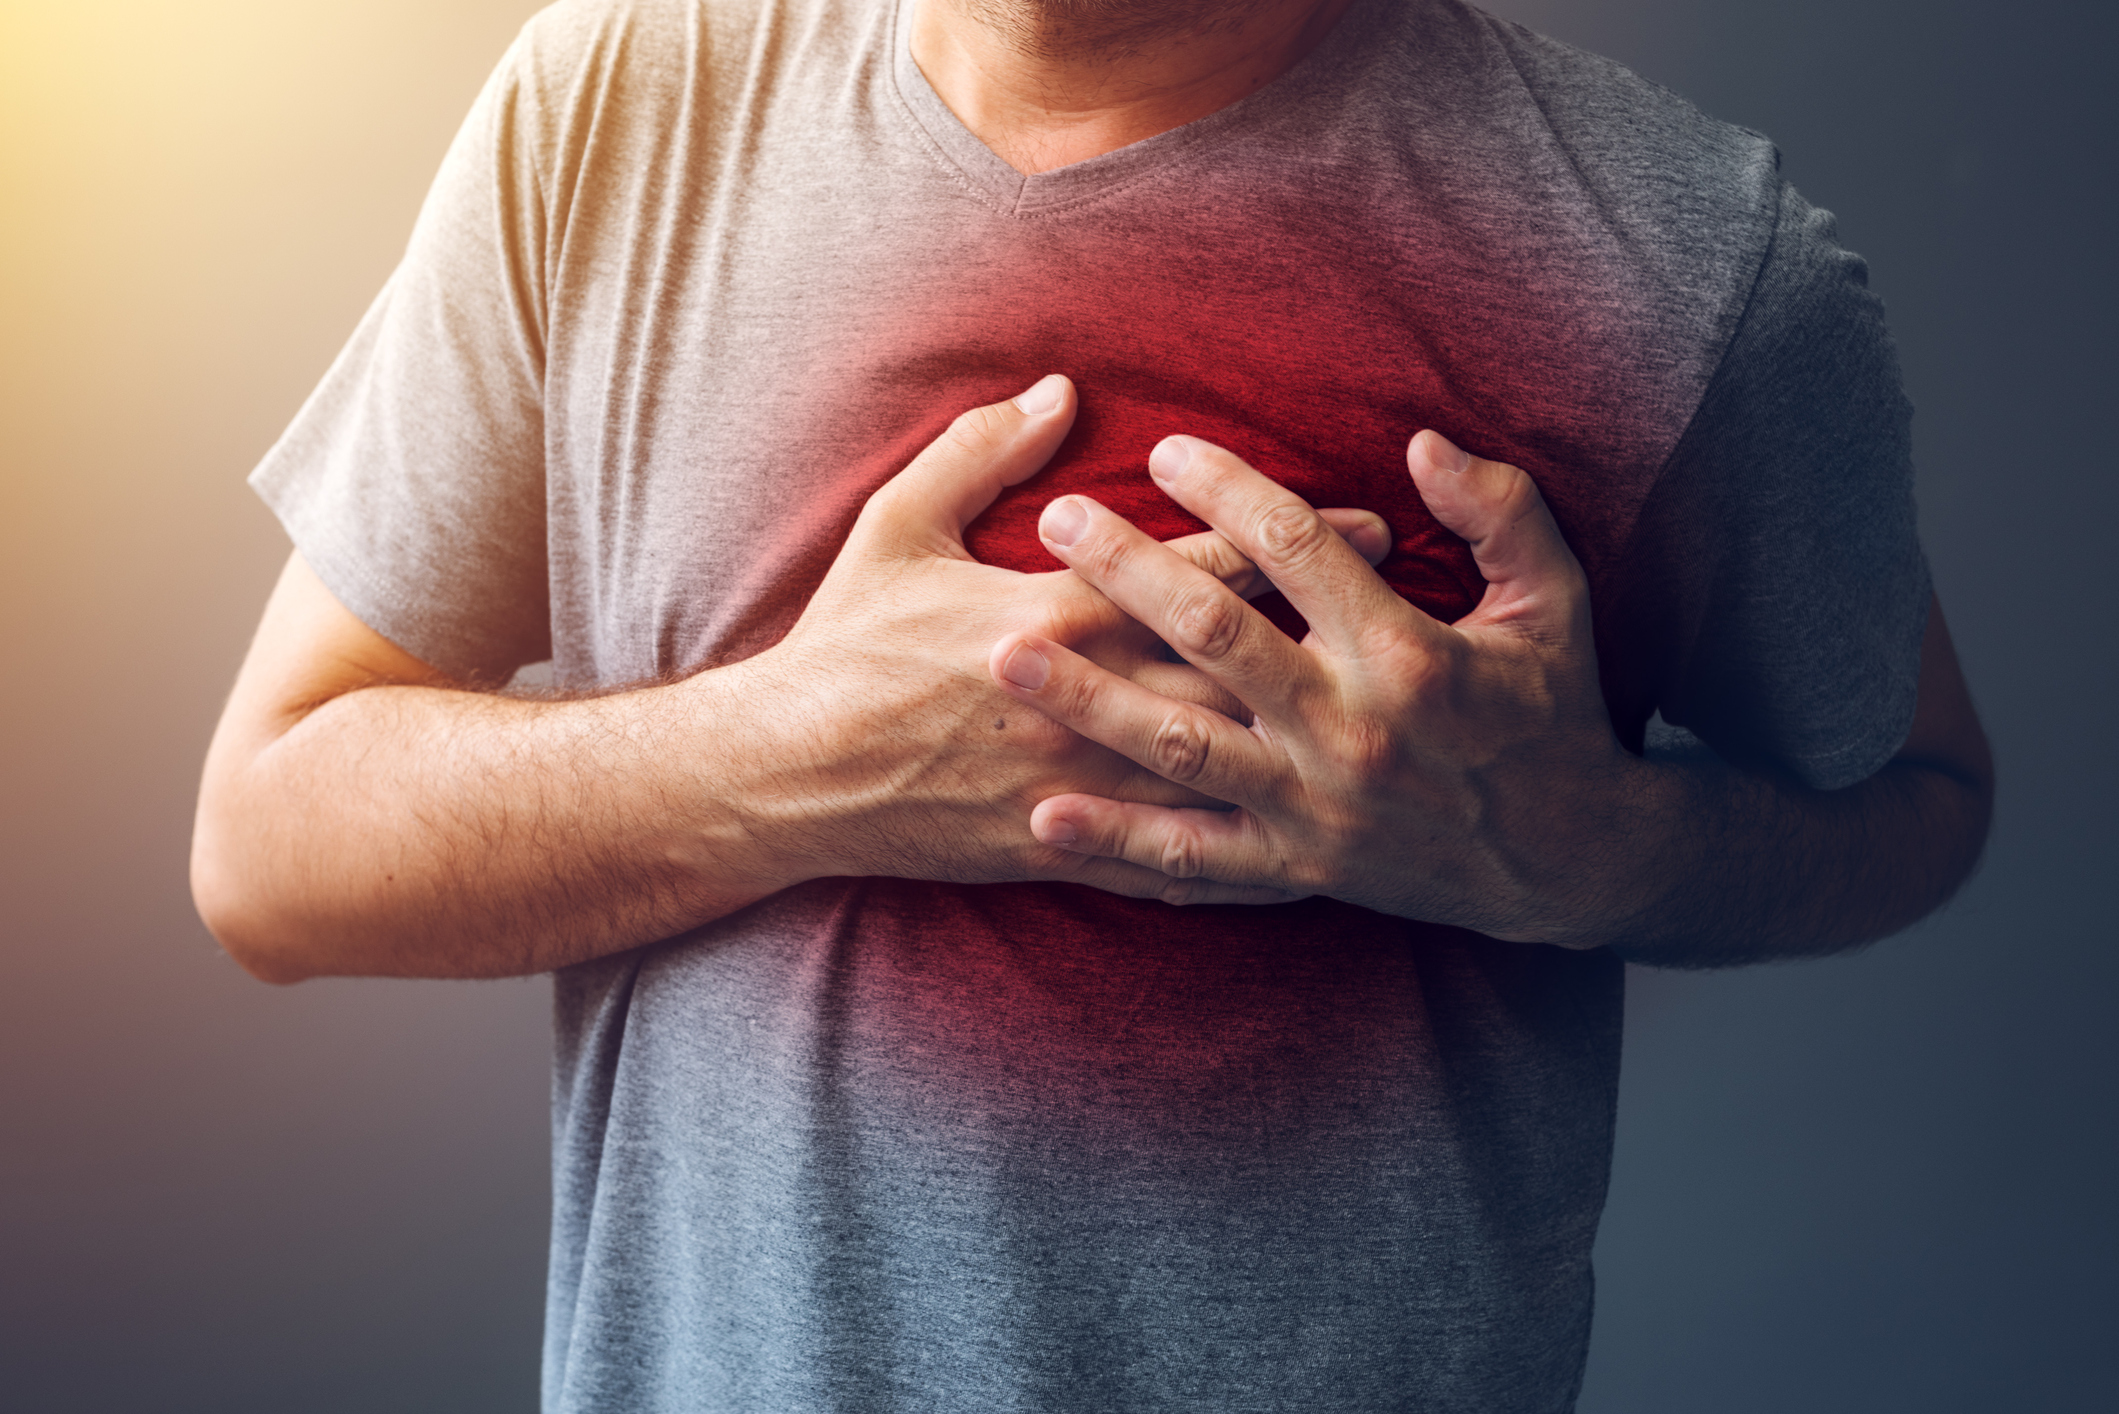 The diet that can cause your heart to fail after a heart attack